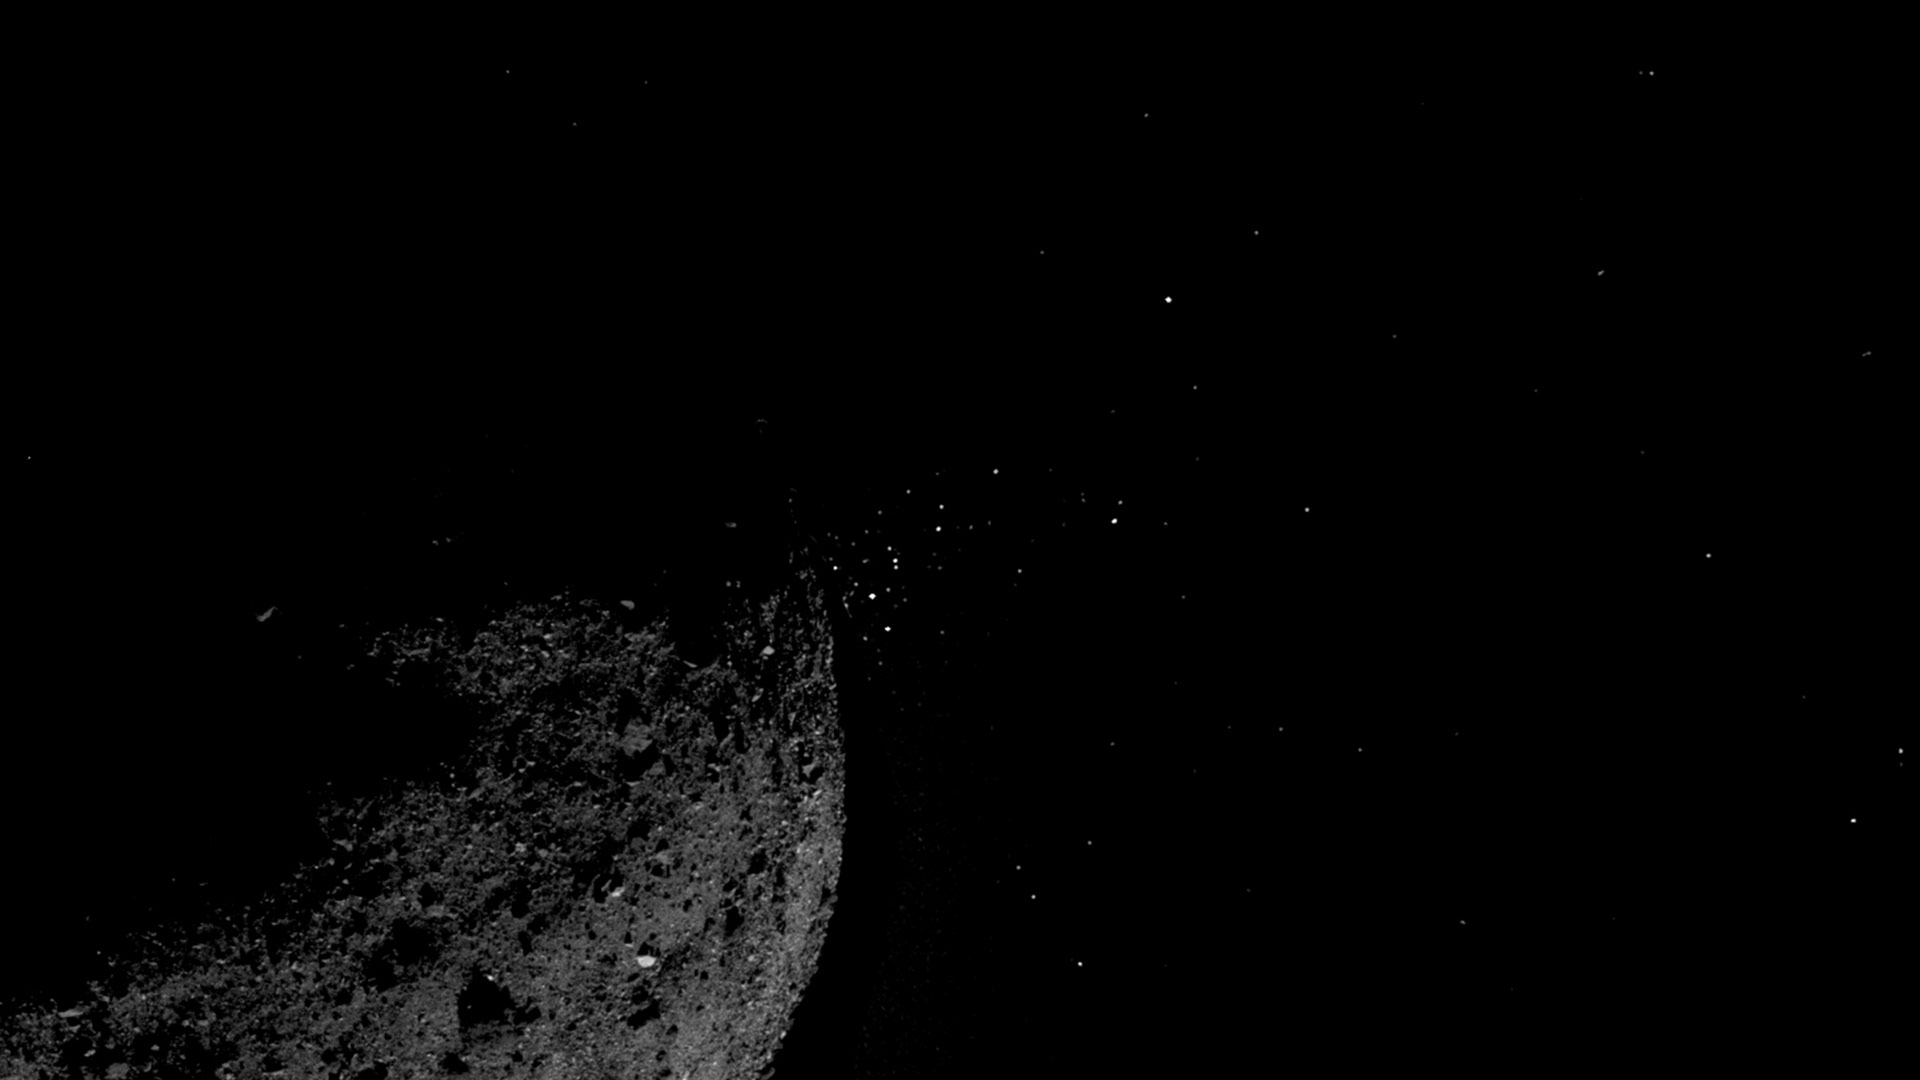 OSIRIS-REx photograph shows material being ejected from the surface of the asteroid Bennu in January 2019.